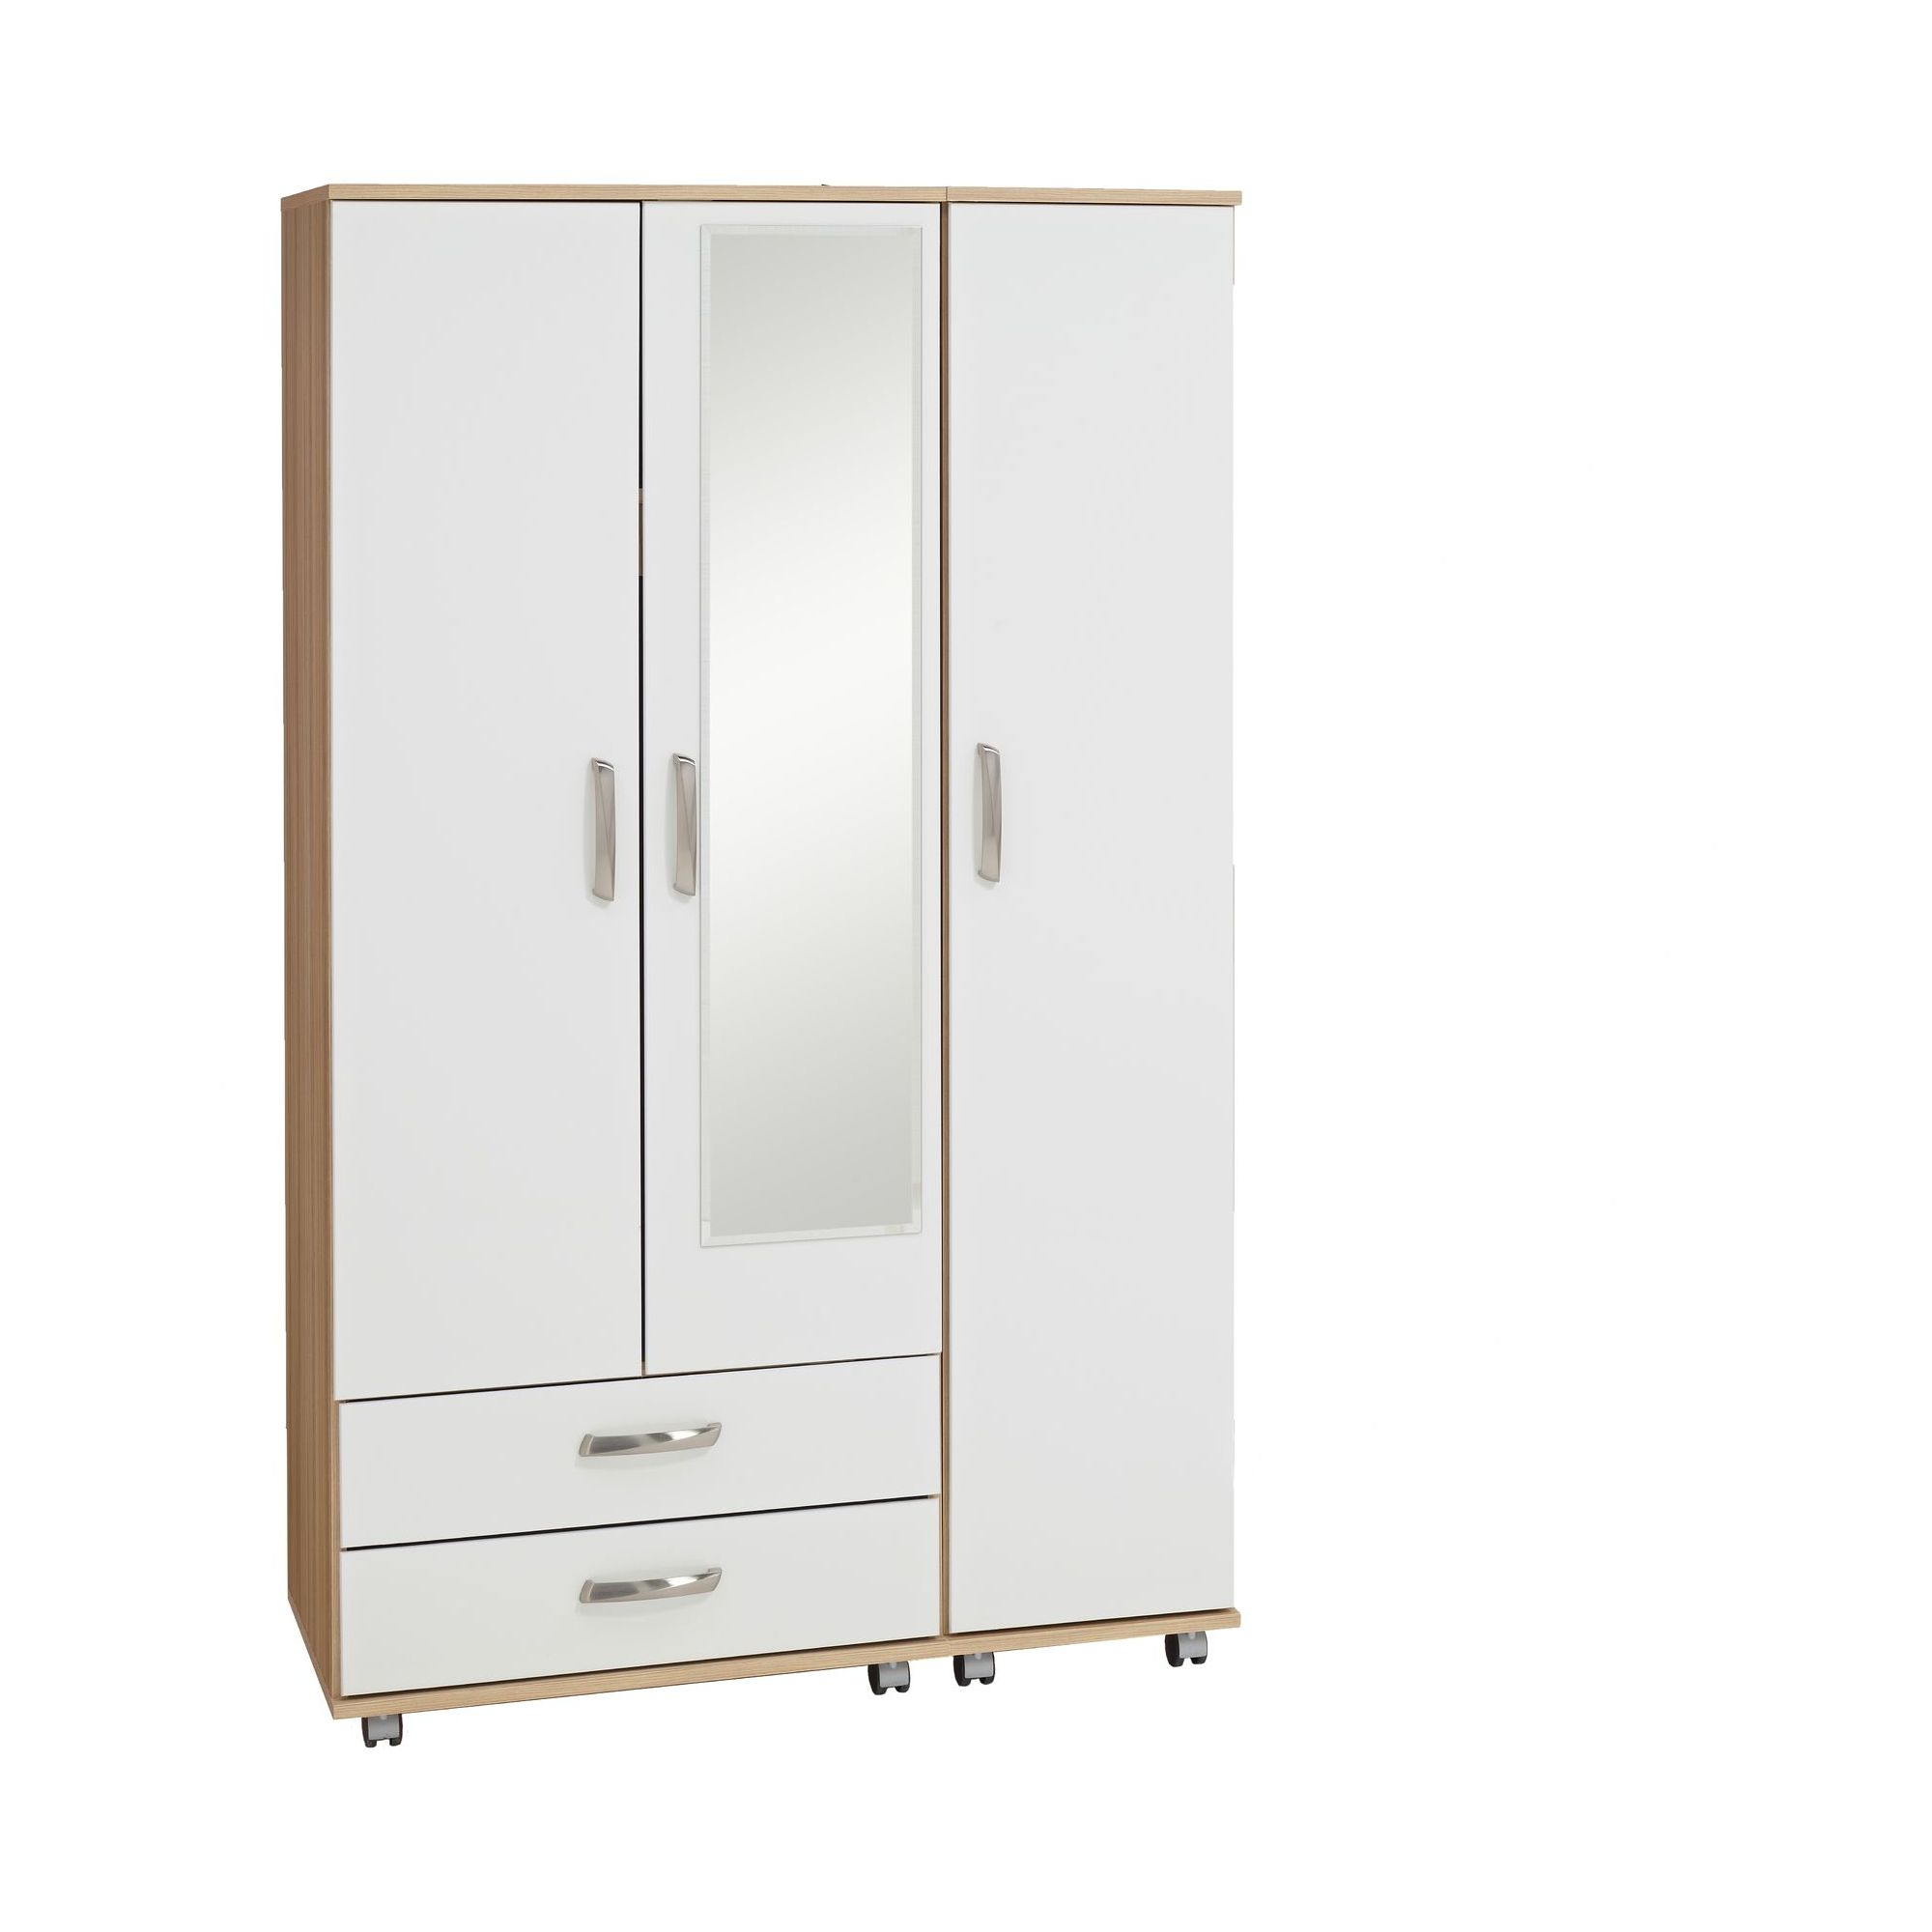 Ideal Furniture Regal 2 Drawer Wardrobe in white at Tescos Direct